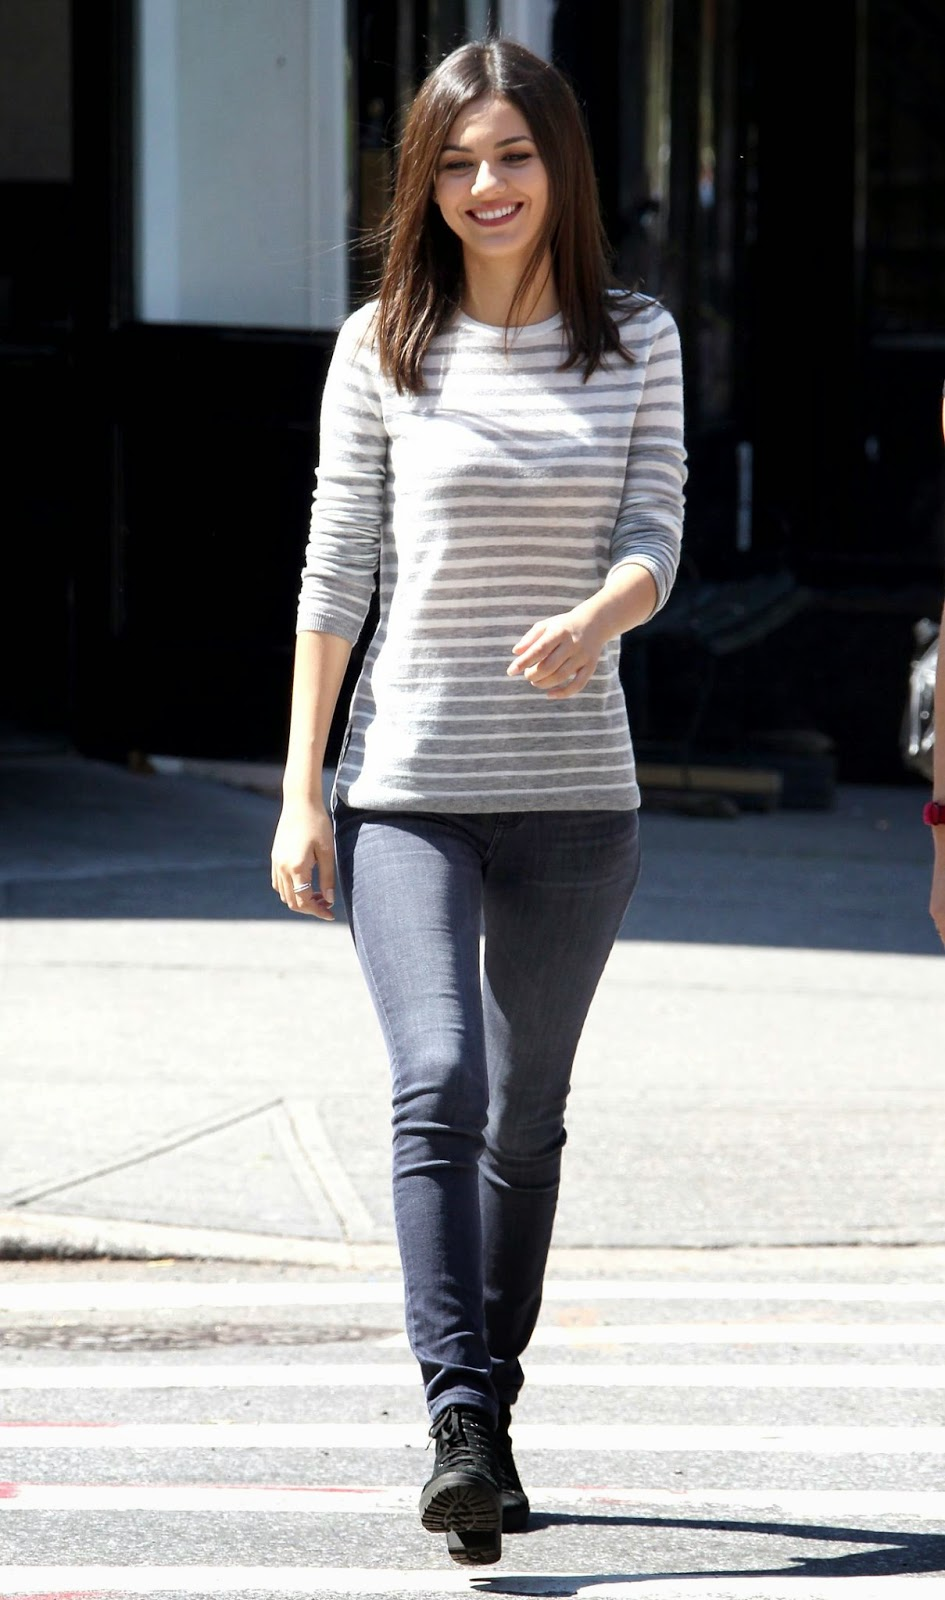 Victoria Justice in a striped top and skinny jeans on set in Brooklyn